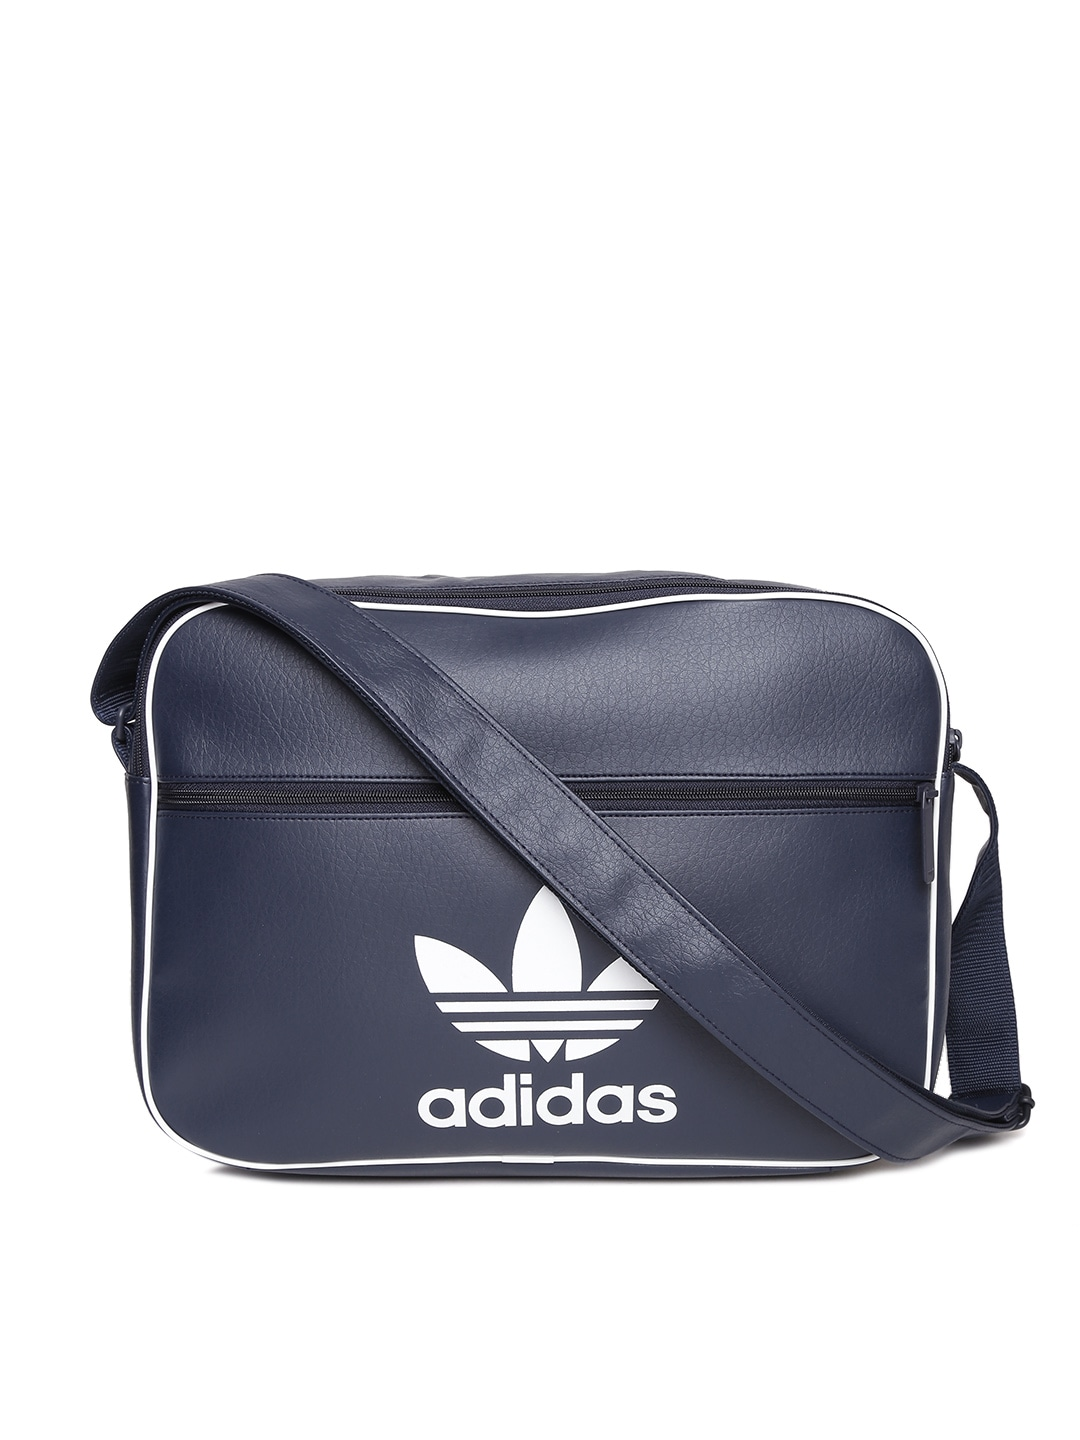 29d28e425bb5d Buy adidas originals side bag > OFF73% Discounted